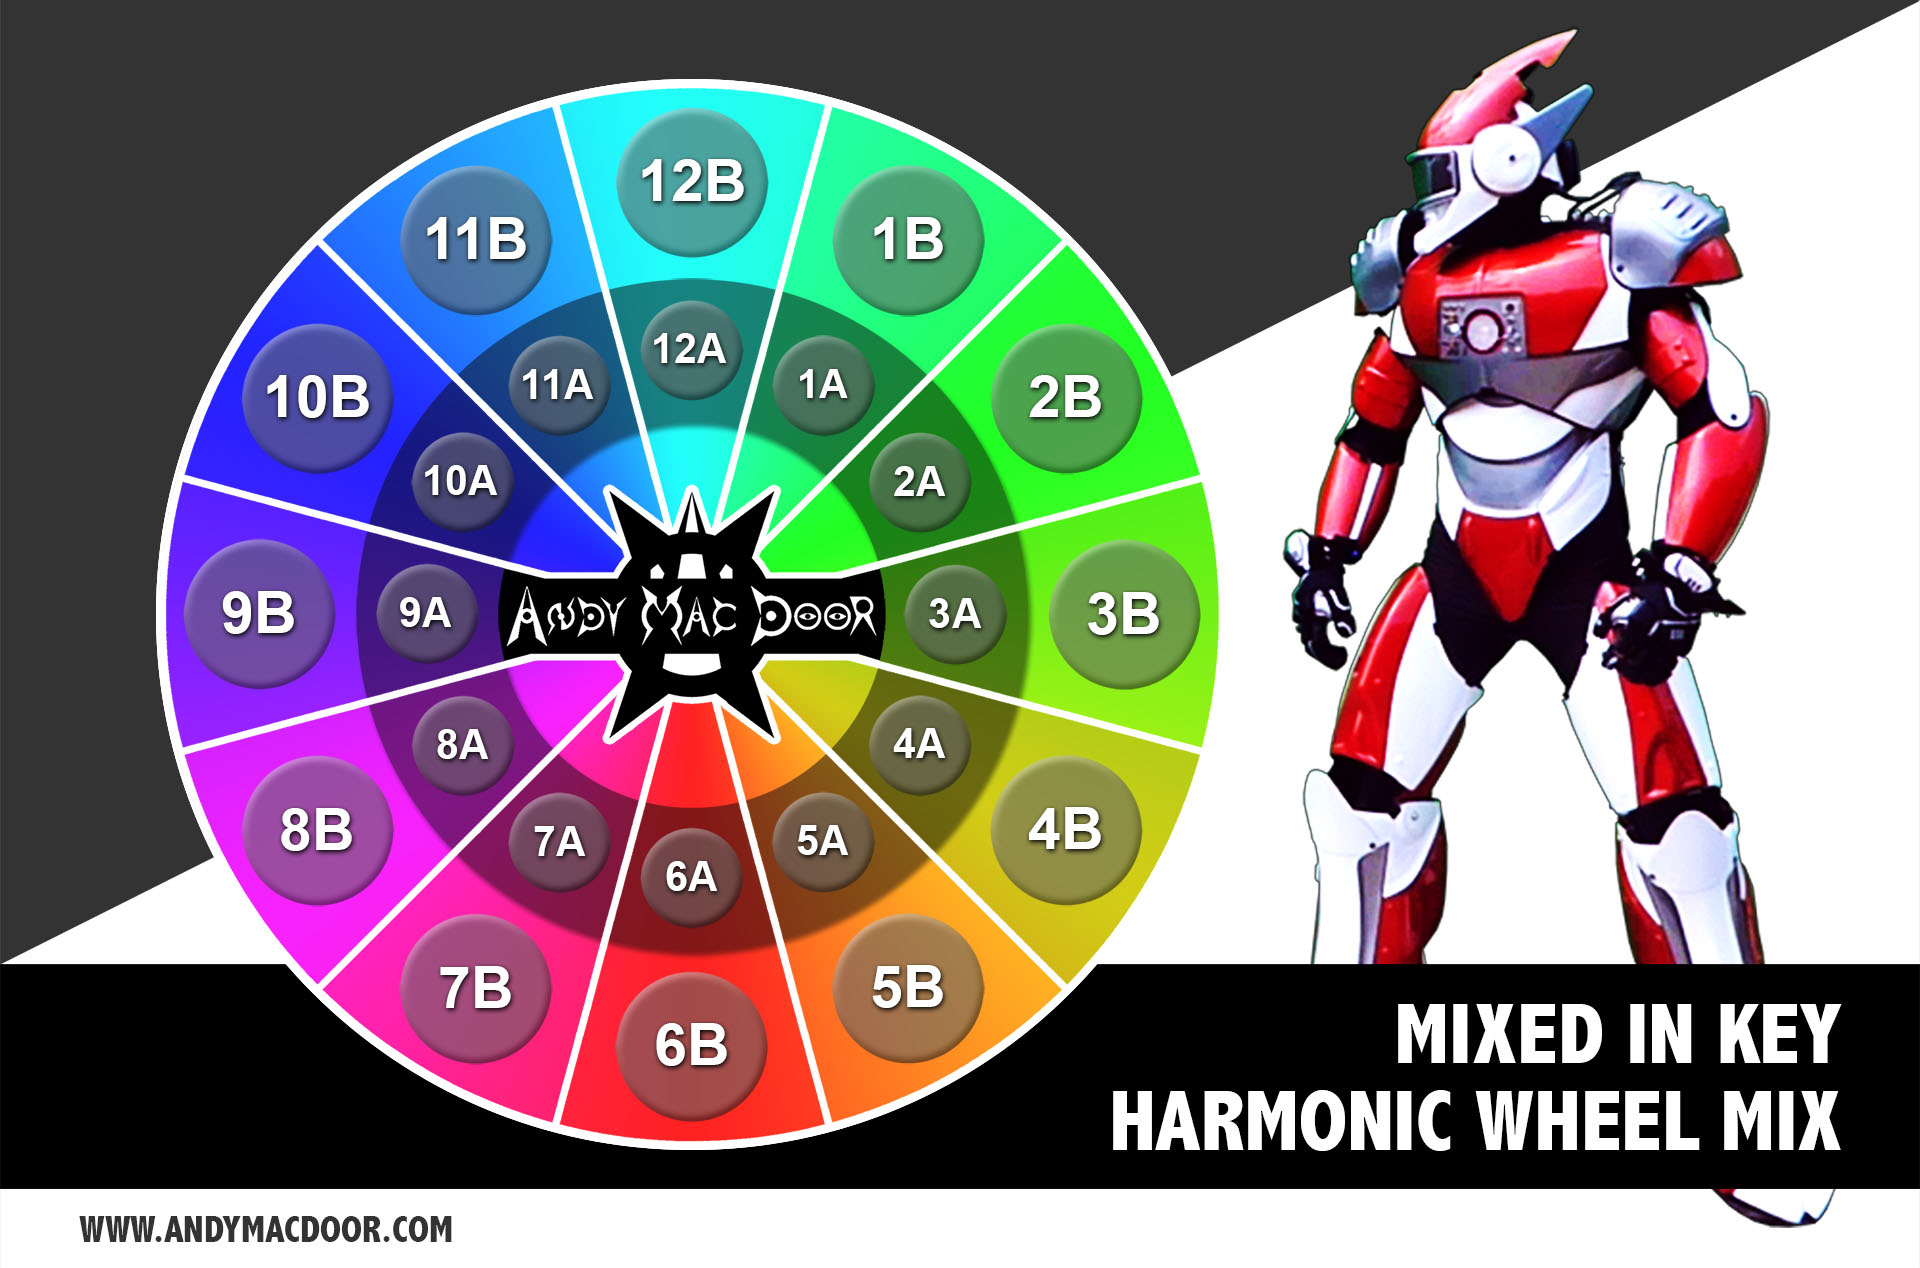 MIXED IN KEY - Harmonic mix wheel schema - Camelot - by Andy Mac Door